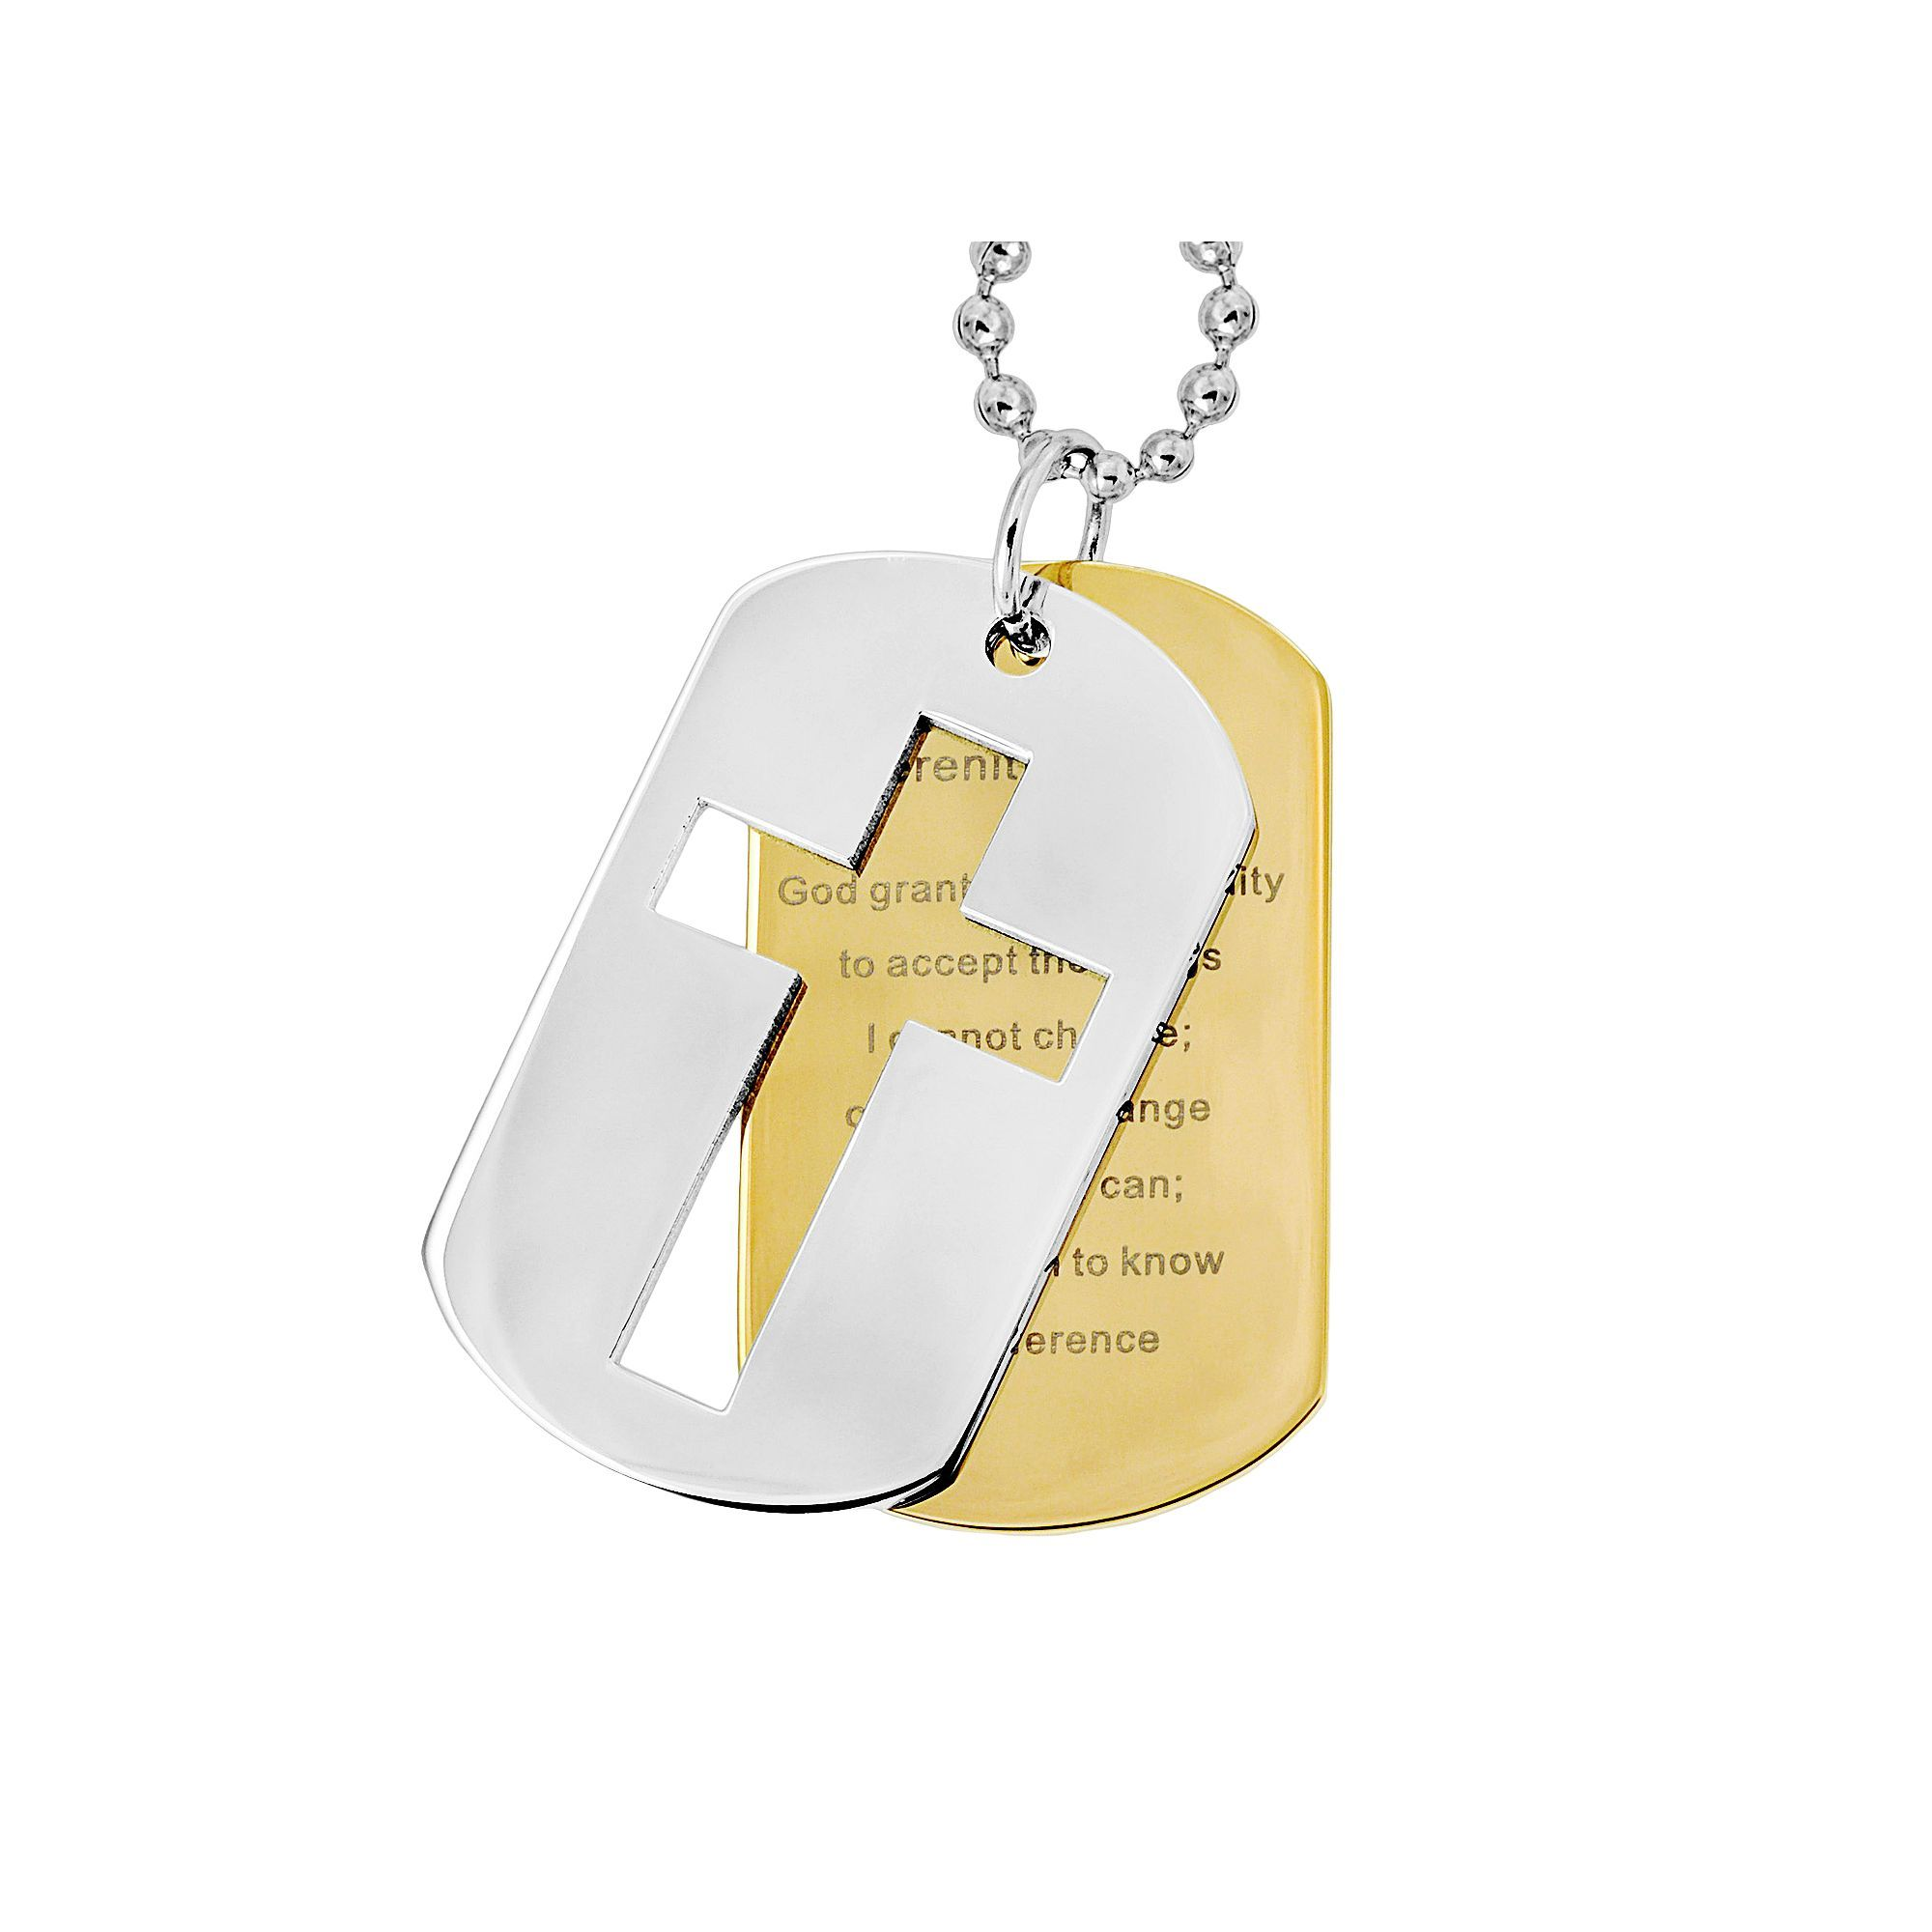 prayer aunt key angelstar magnifier serenity pendant necklace pendants